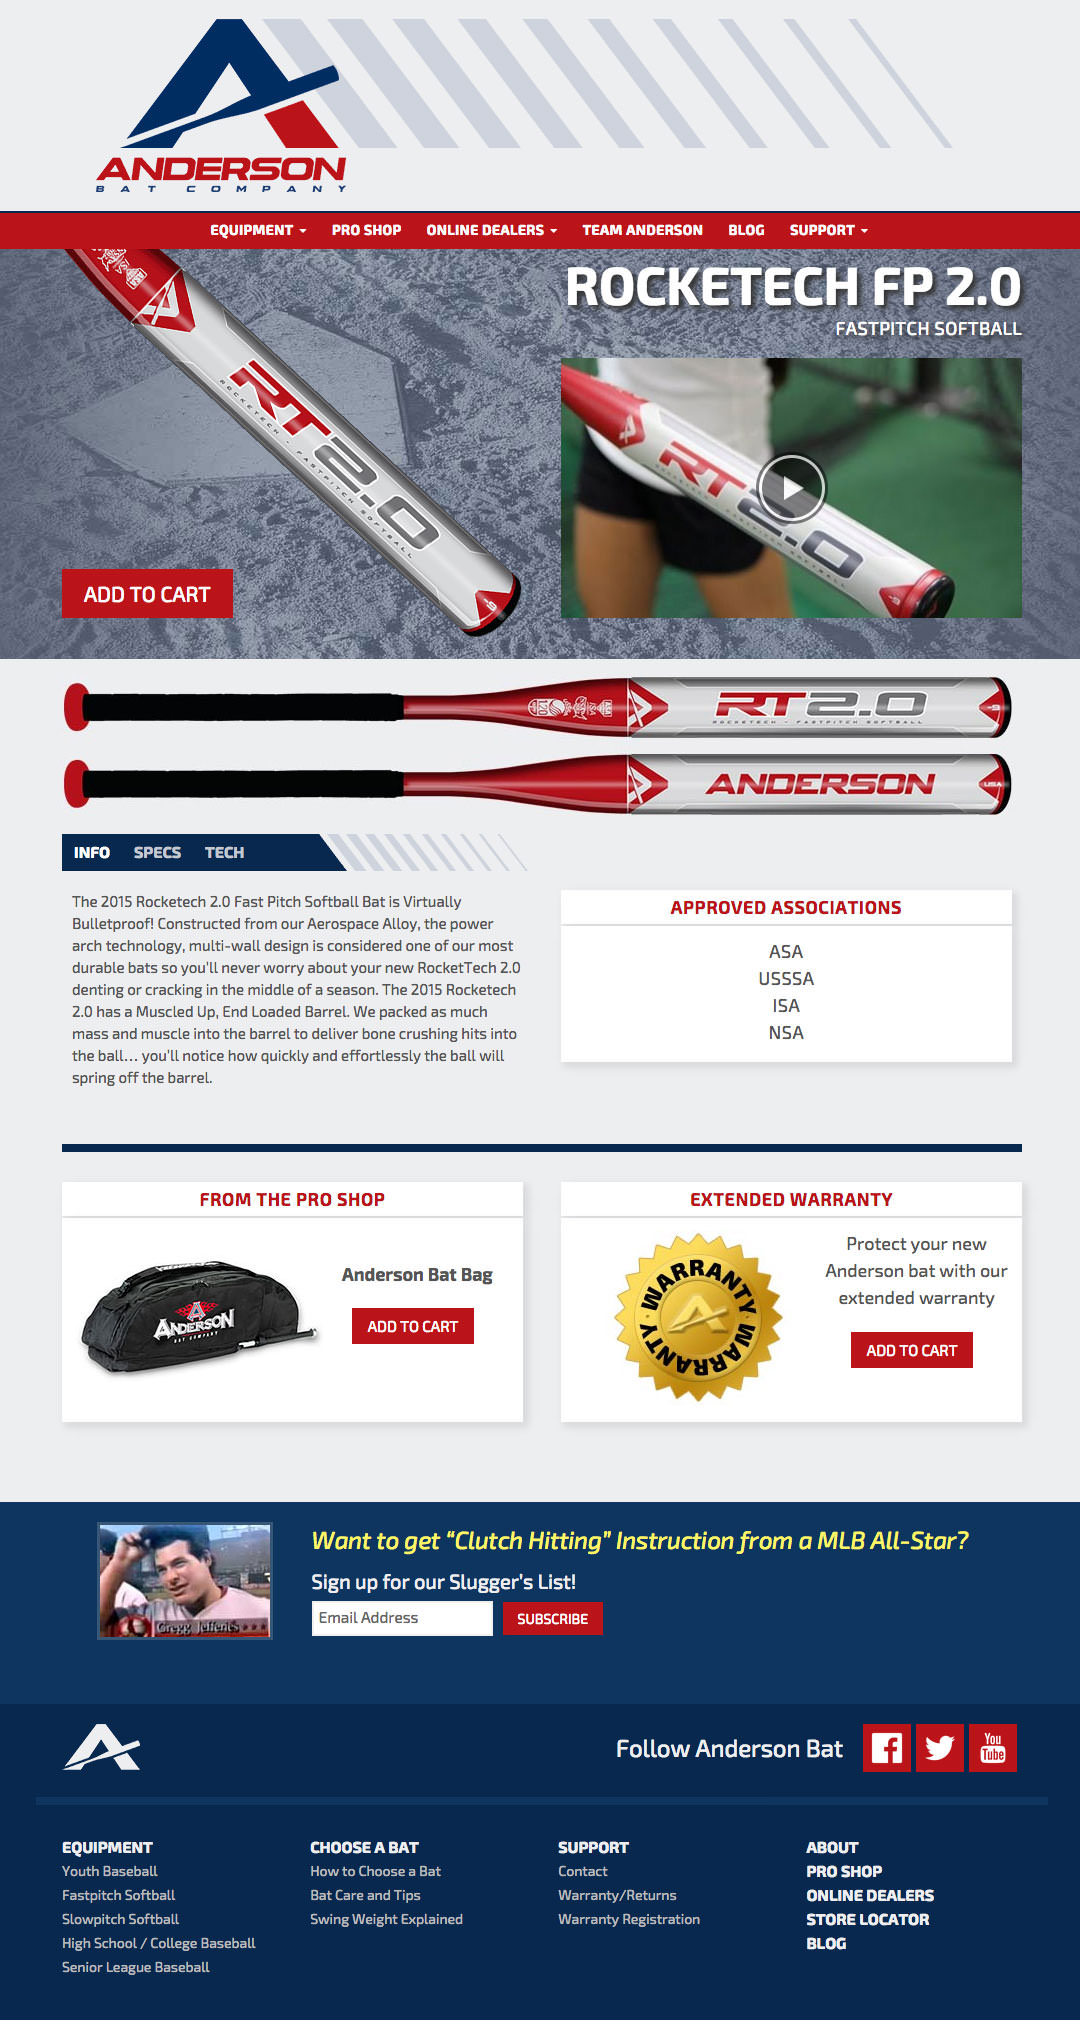 Anderson Bat Website - RockeTech FP